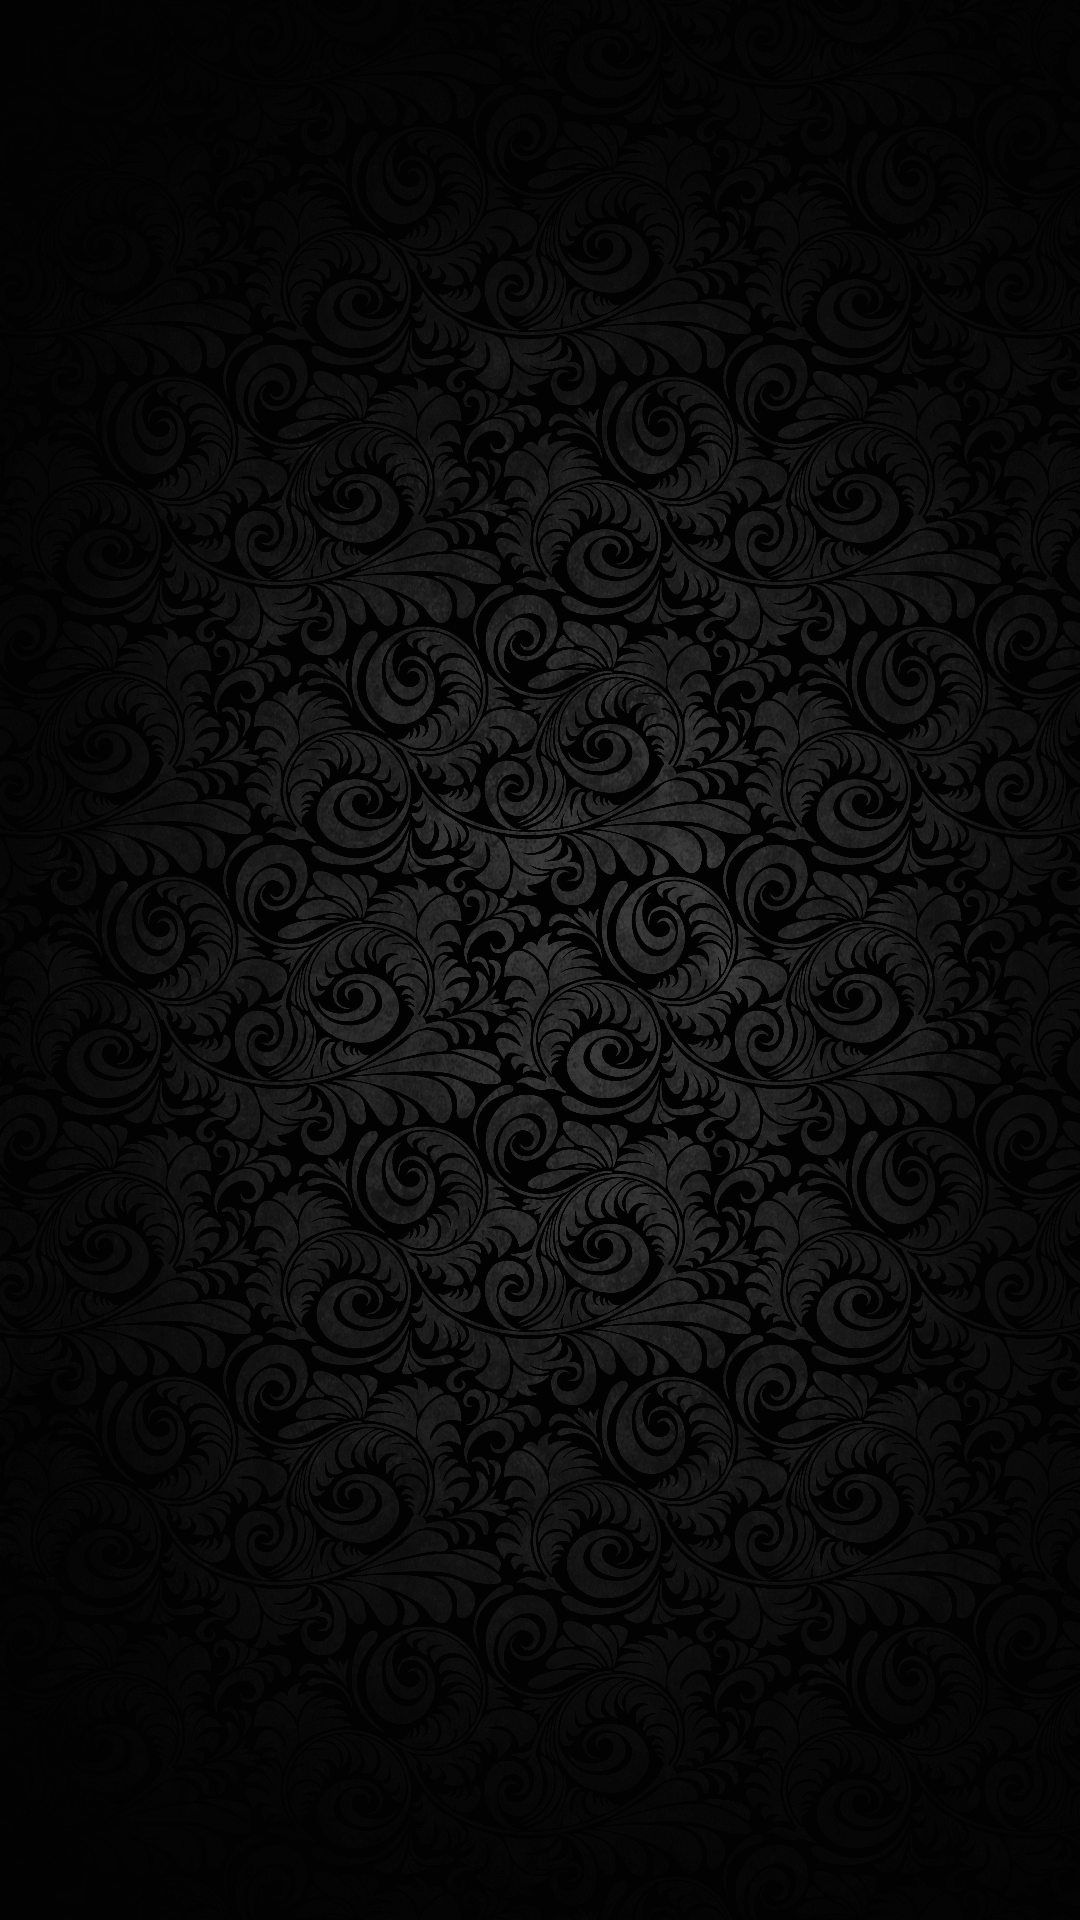 Wallpaper full hd 1080 x 1920 smartphone dark elegant